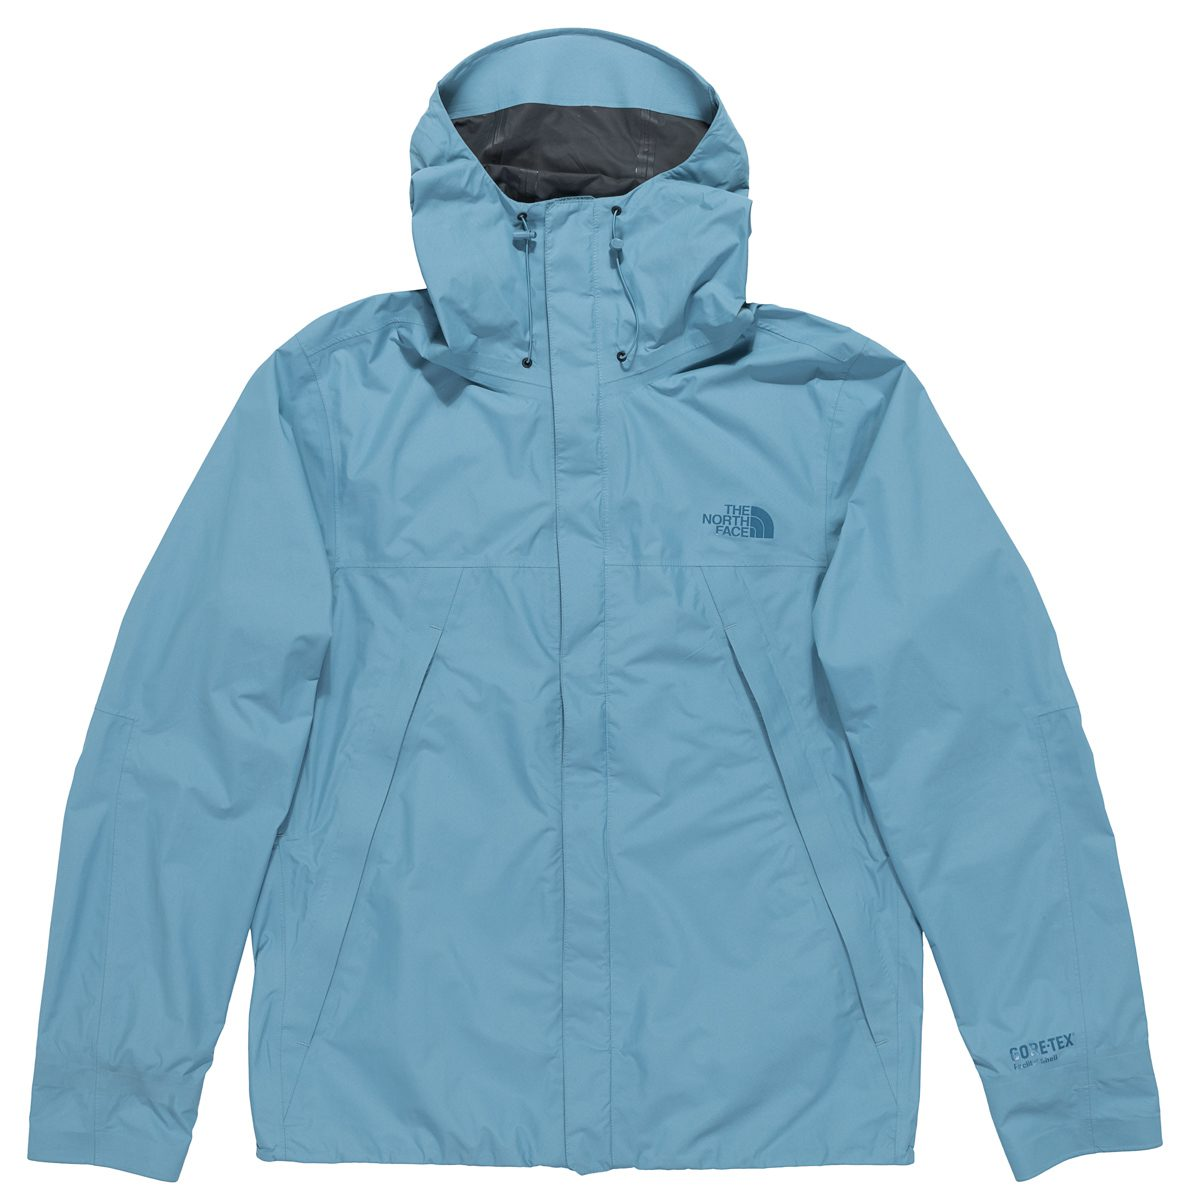 THE-NORTH-FACE-M1990-MOUNTAIN-JACKET-LIGHT-BLUE2.jpg